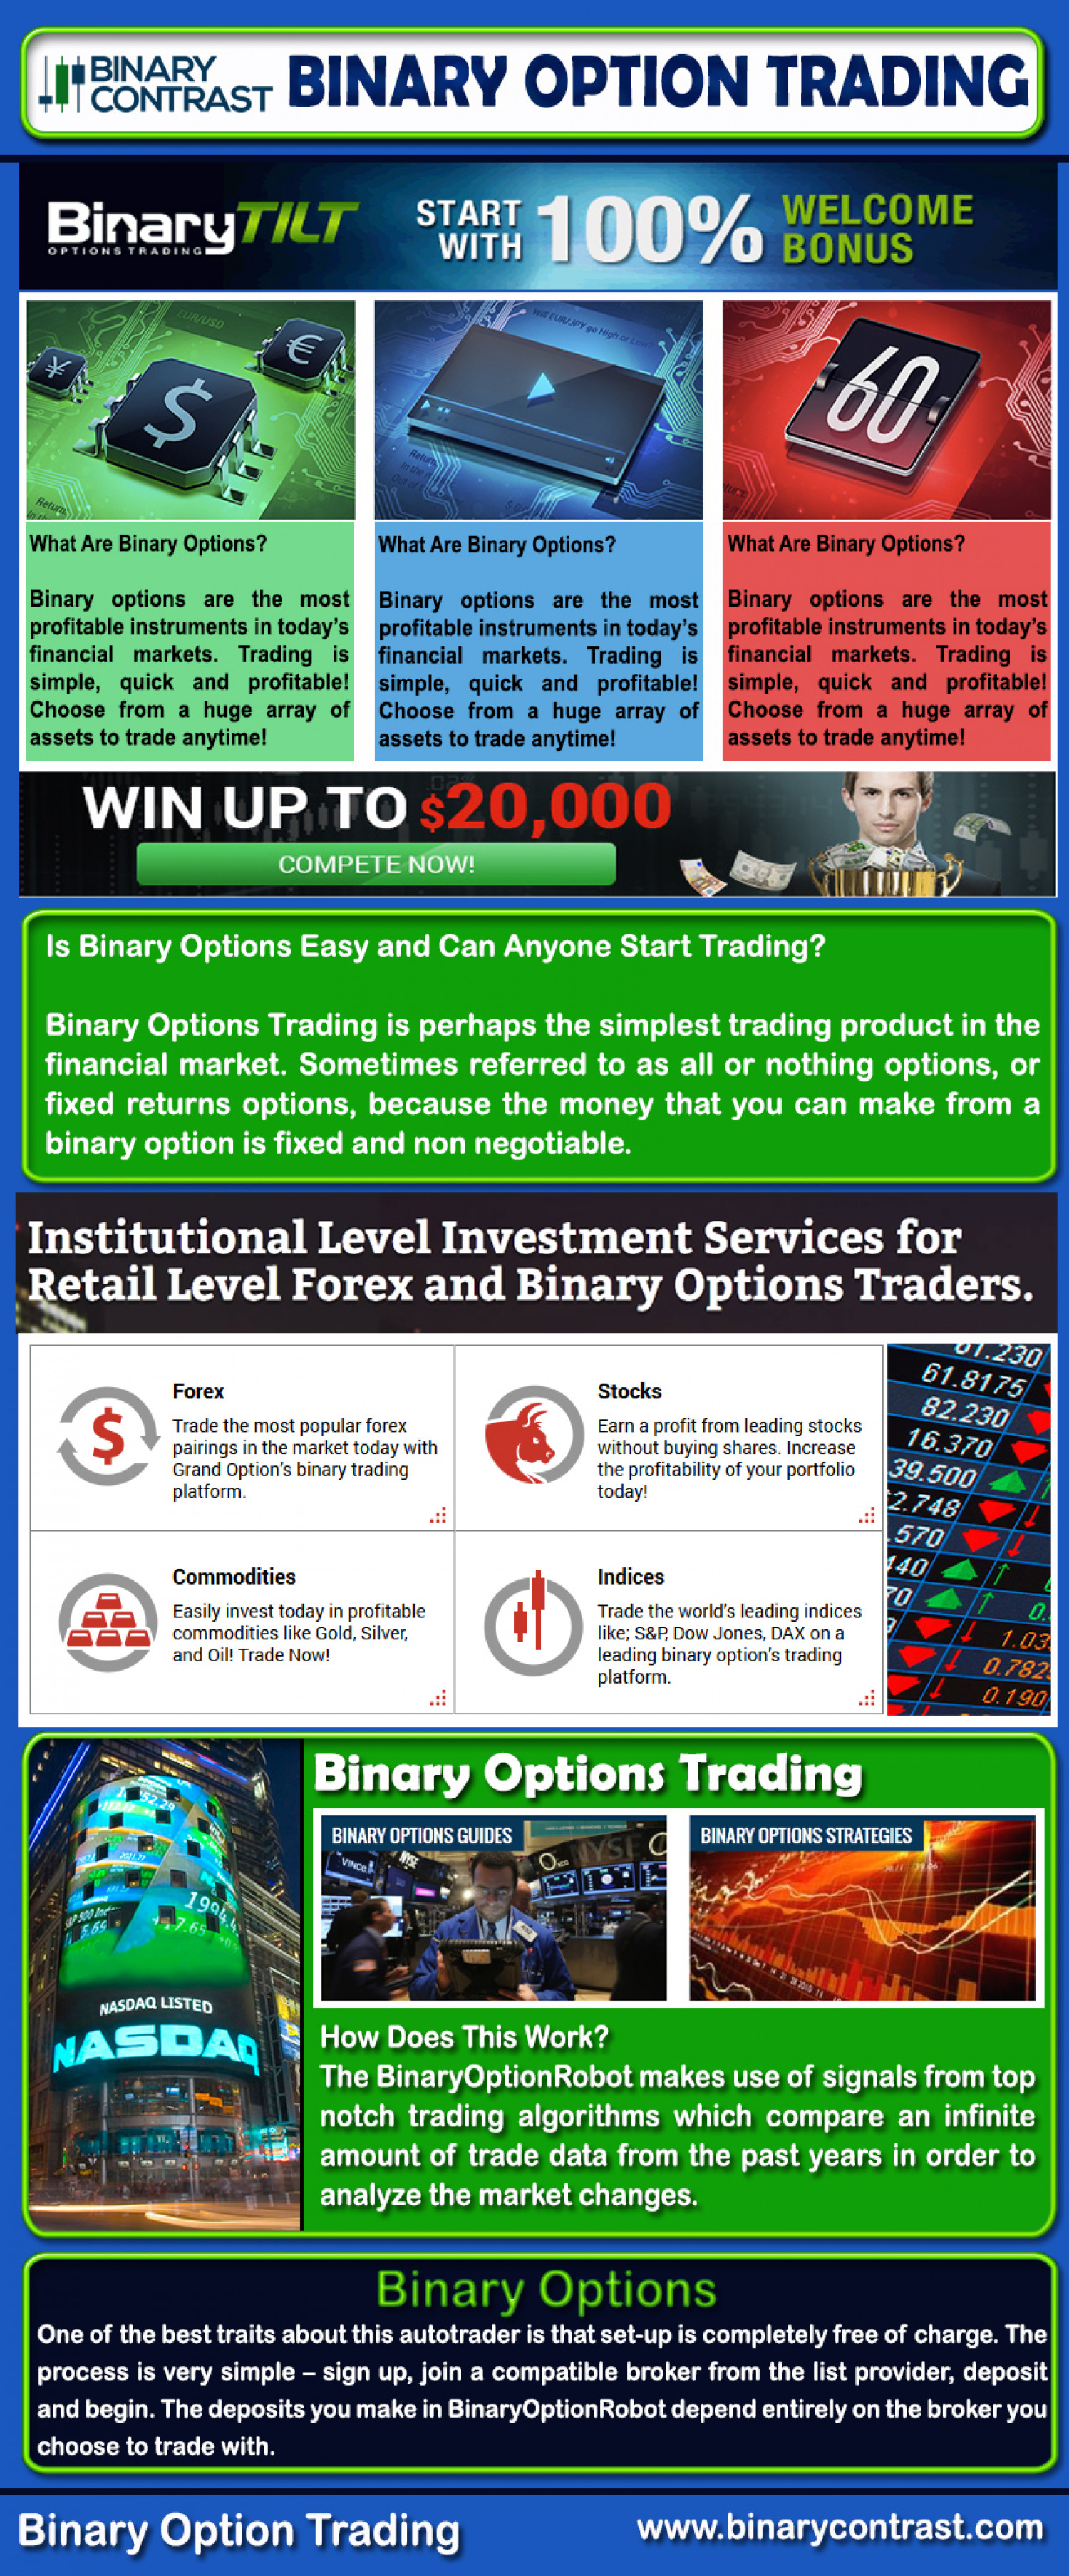 Live binary option trading